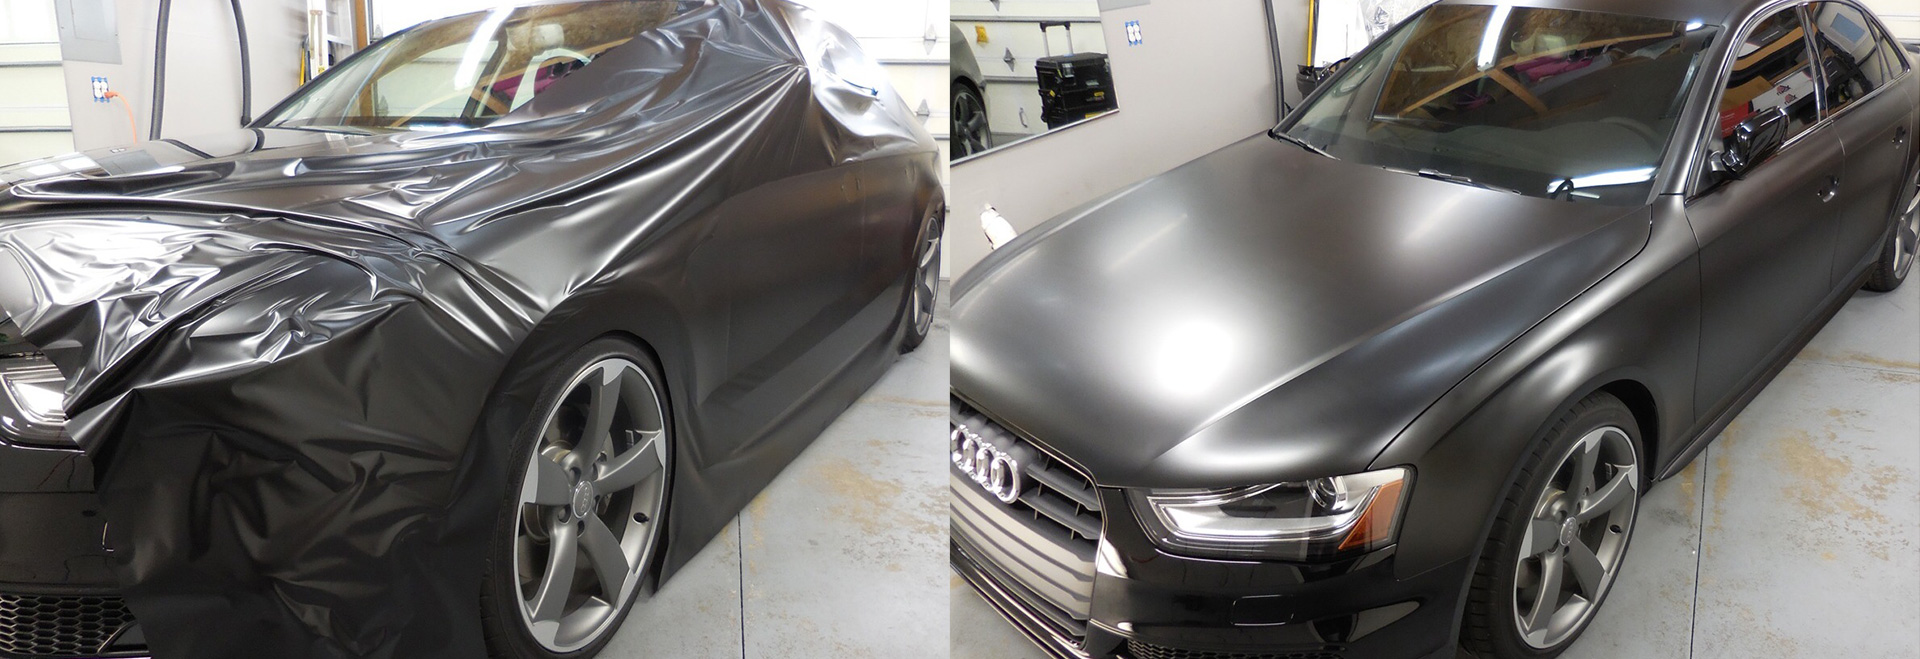 Vehicle Wraps And Graphic Film Fade To Black Protective Films